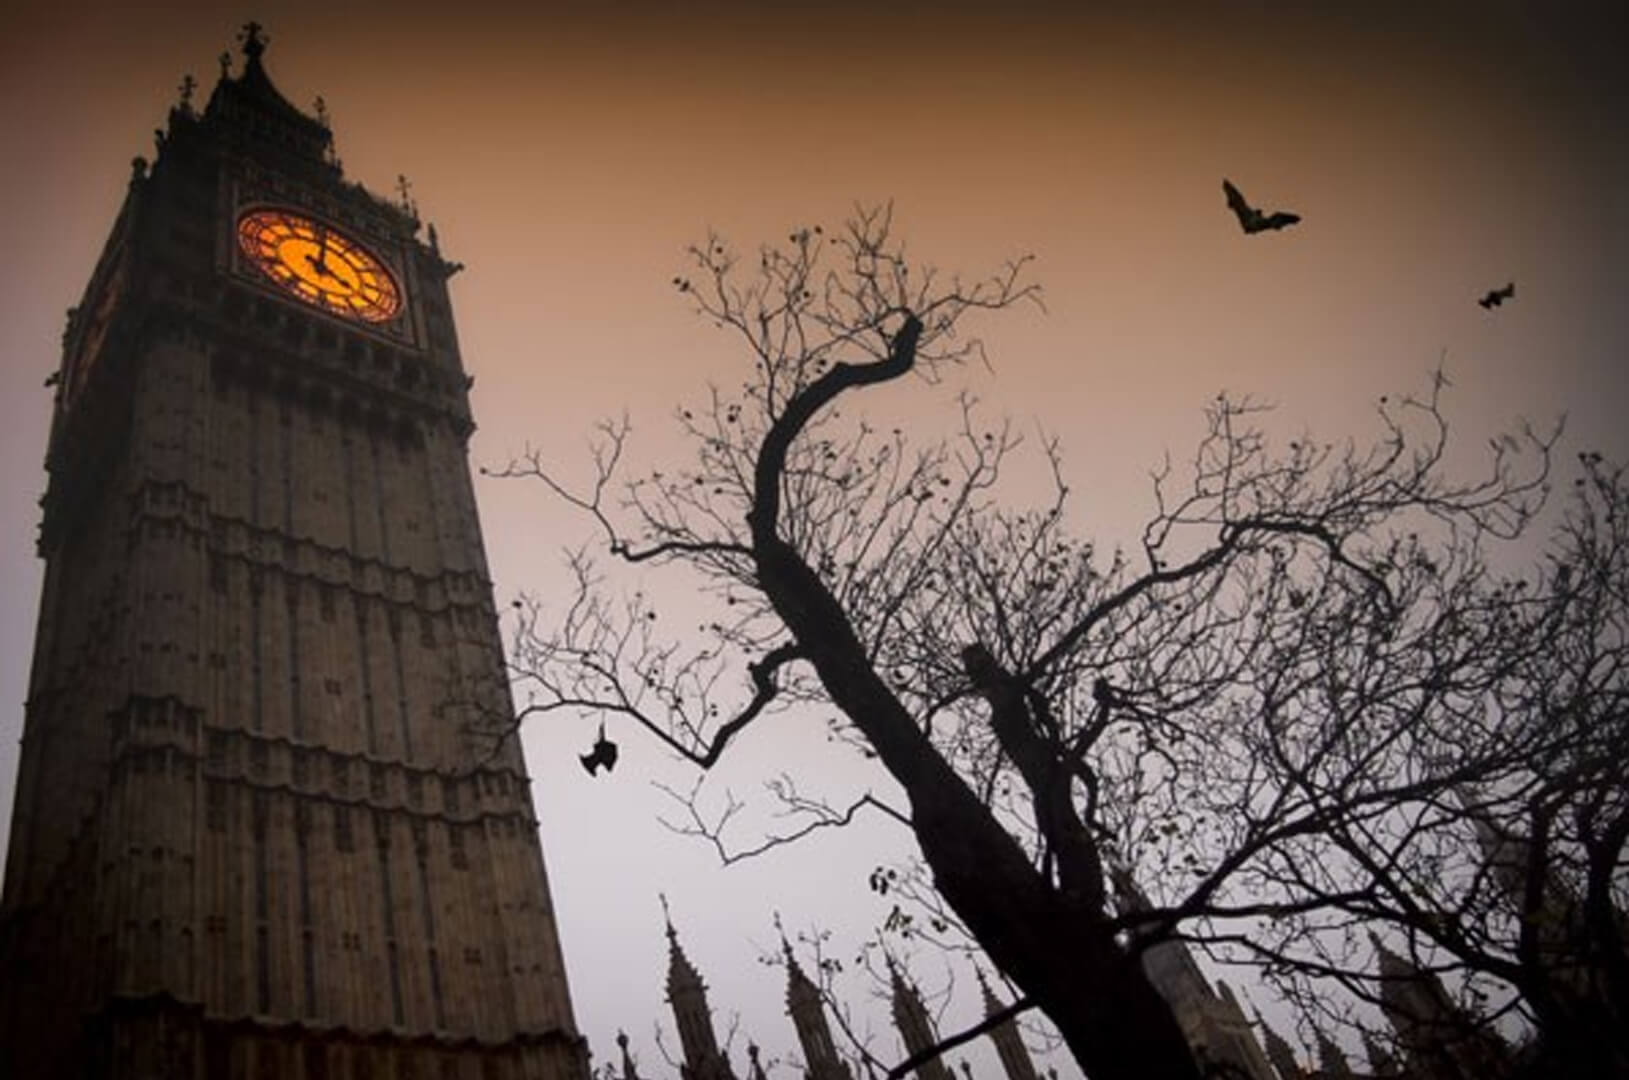 London's horror walking tour